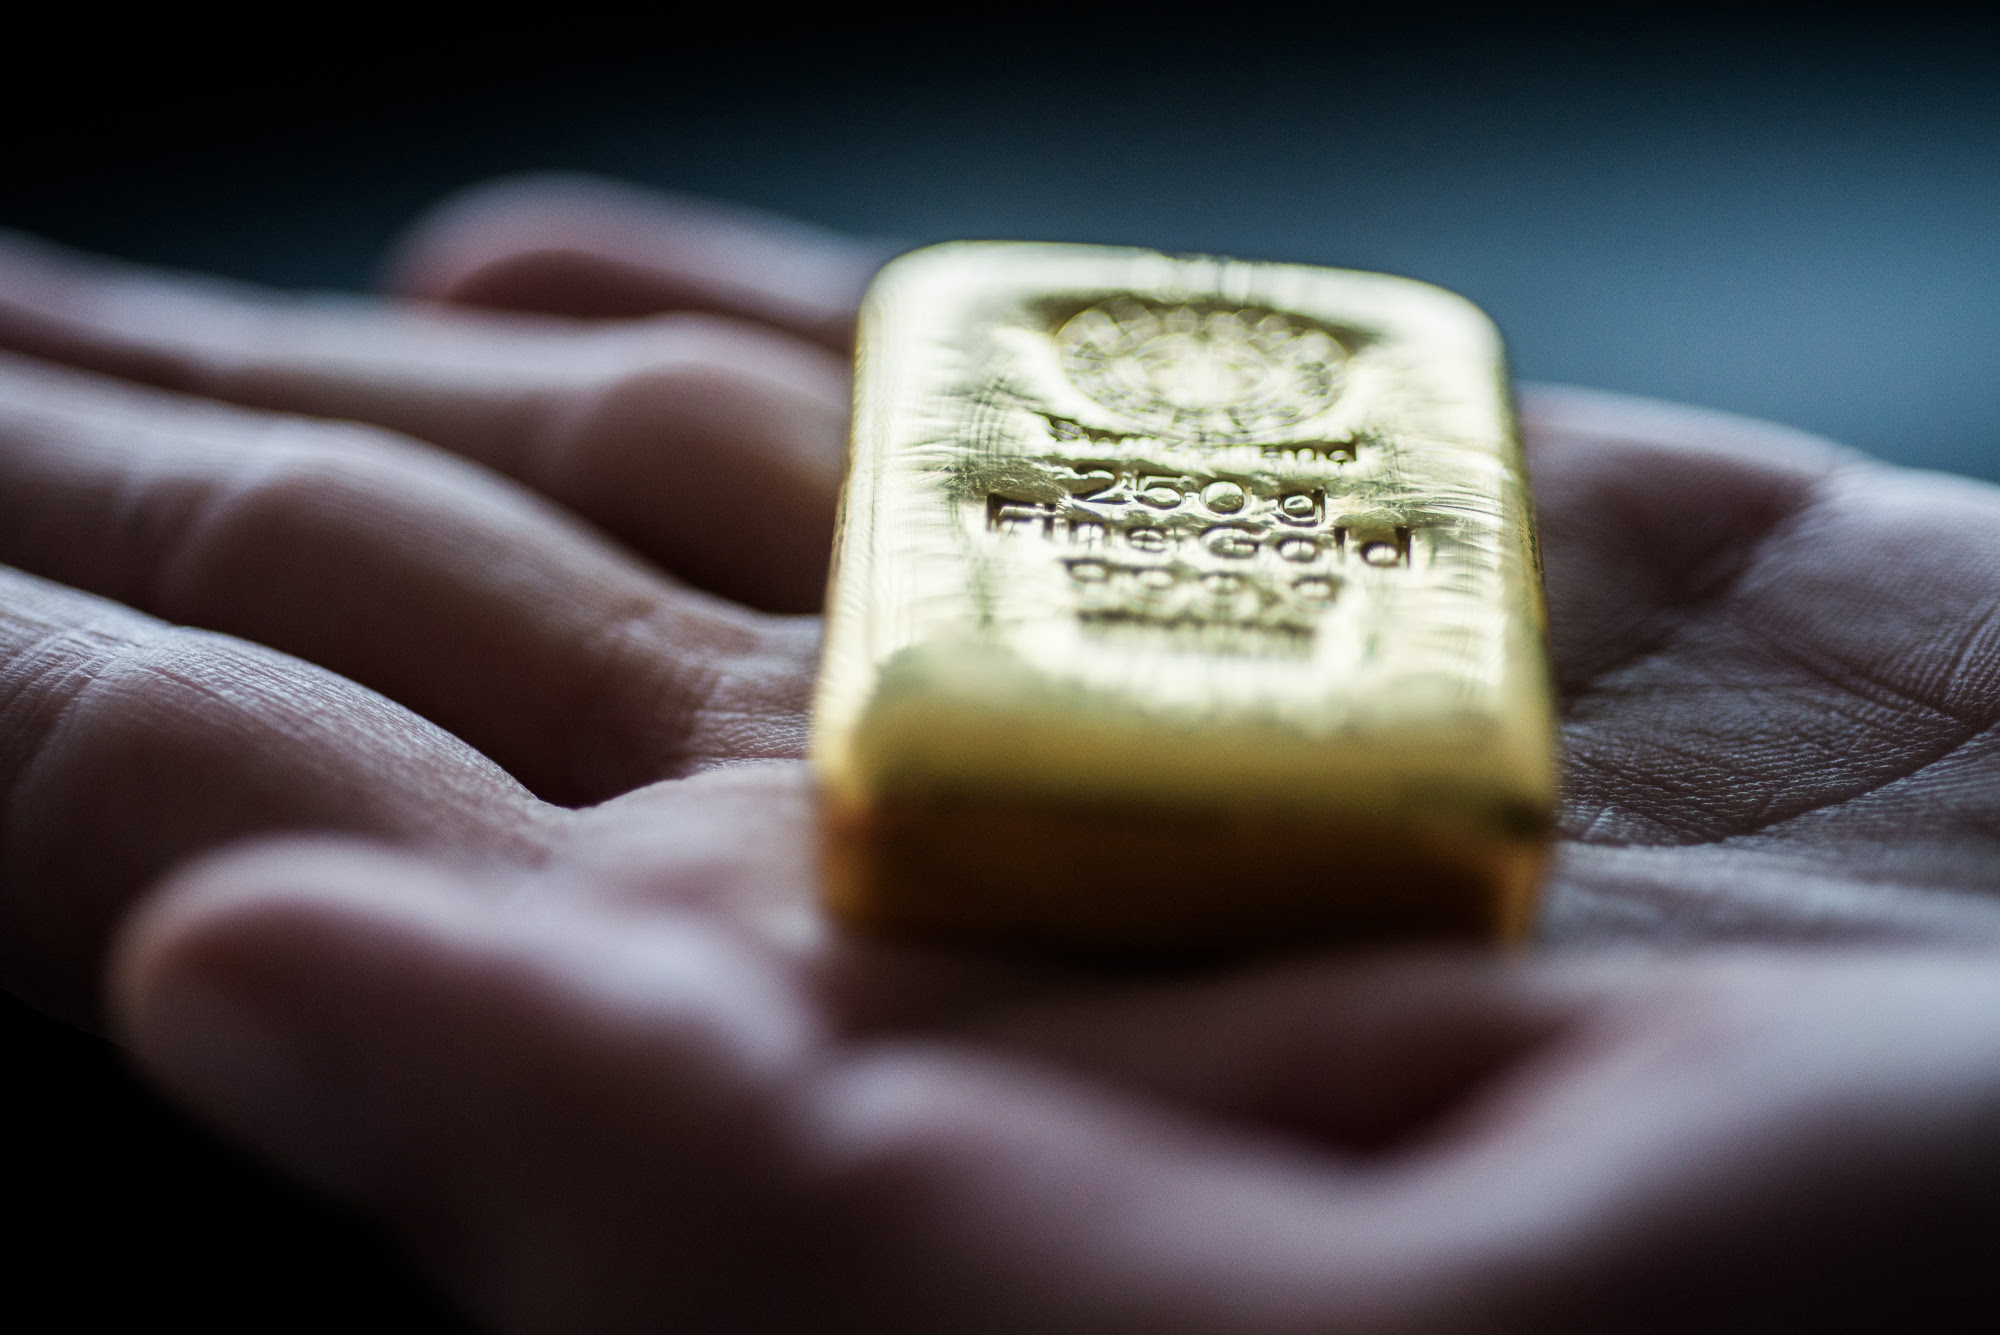 Surging demand and disruptions from the coronavirus pandemic have created a shortage of the small gold bars most popular with consumers.